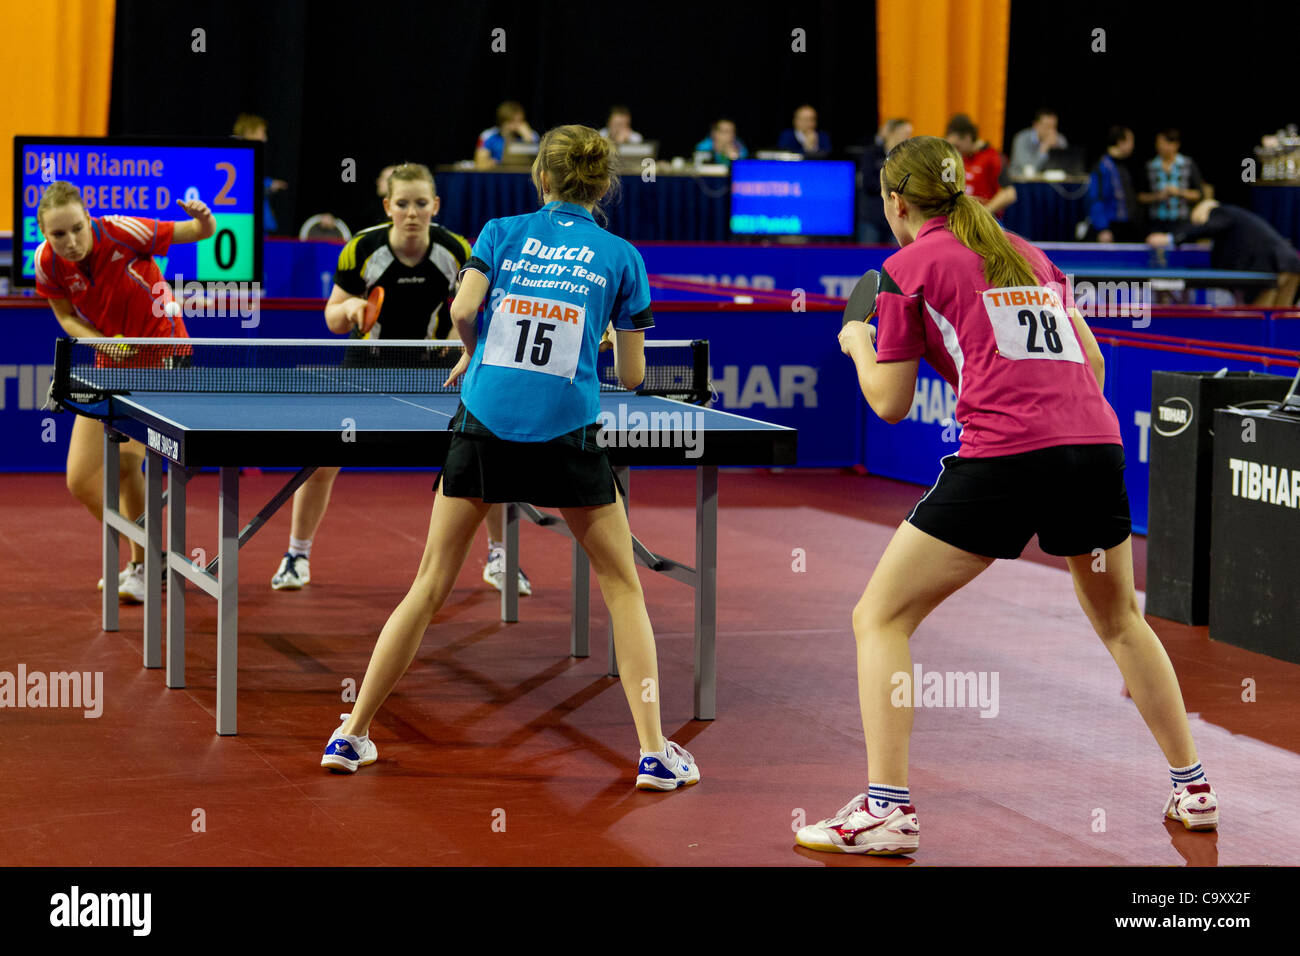 EINDHOVEN, THE NETHERLANDS, 03/03/2012. Overview of a ladies doubles match at the Dutch table tennis championships - Stock Image